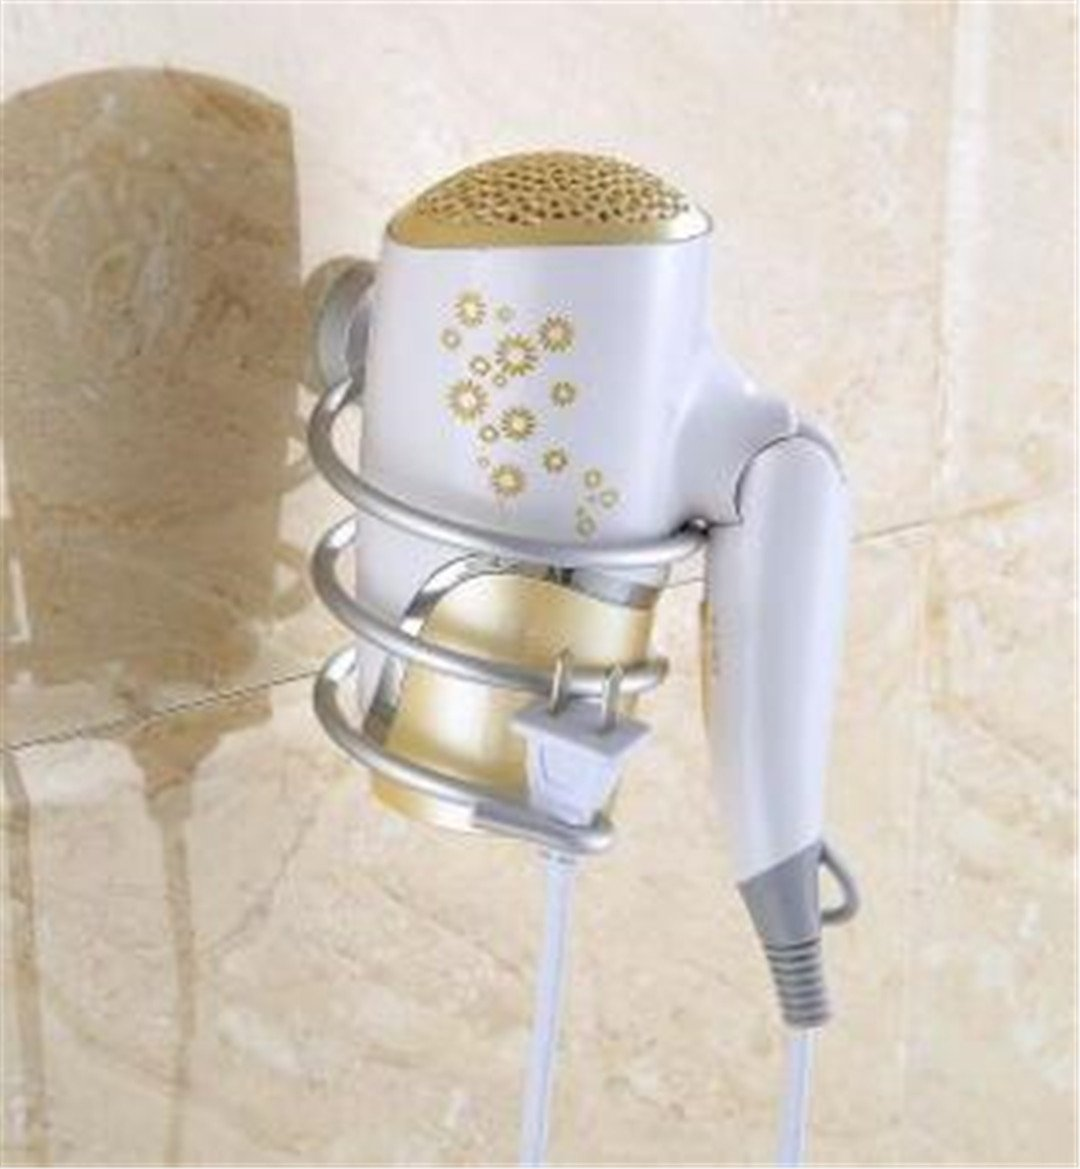 YU-Bathroom SBLE Fashion Multi-Use Aluminum Wall Mounted Hair Dryer Drier Comb Holder Rack Stand Set Storage Organizer Home Use as pictrues3